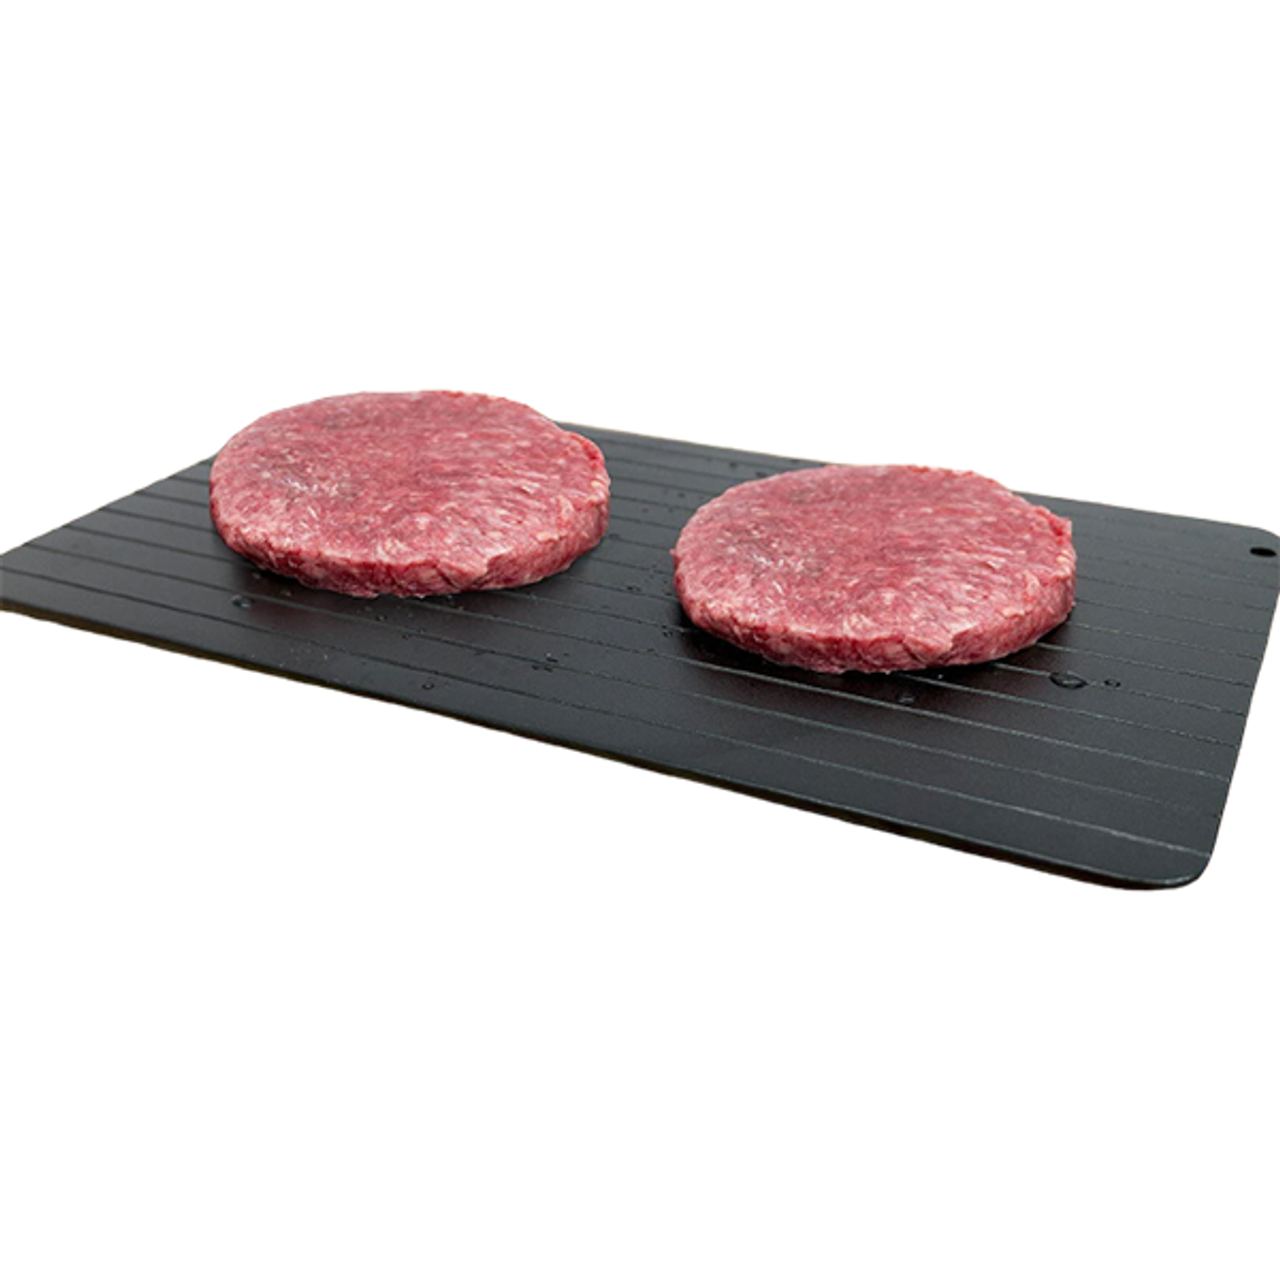 D-Frost Wonder™ Quick Defrosting Tray $15.99 (80% OFF)